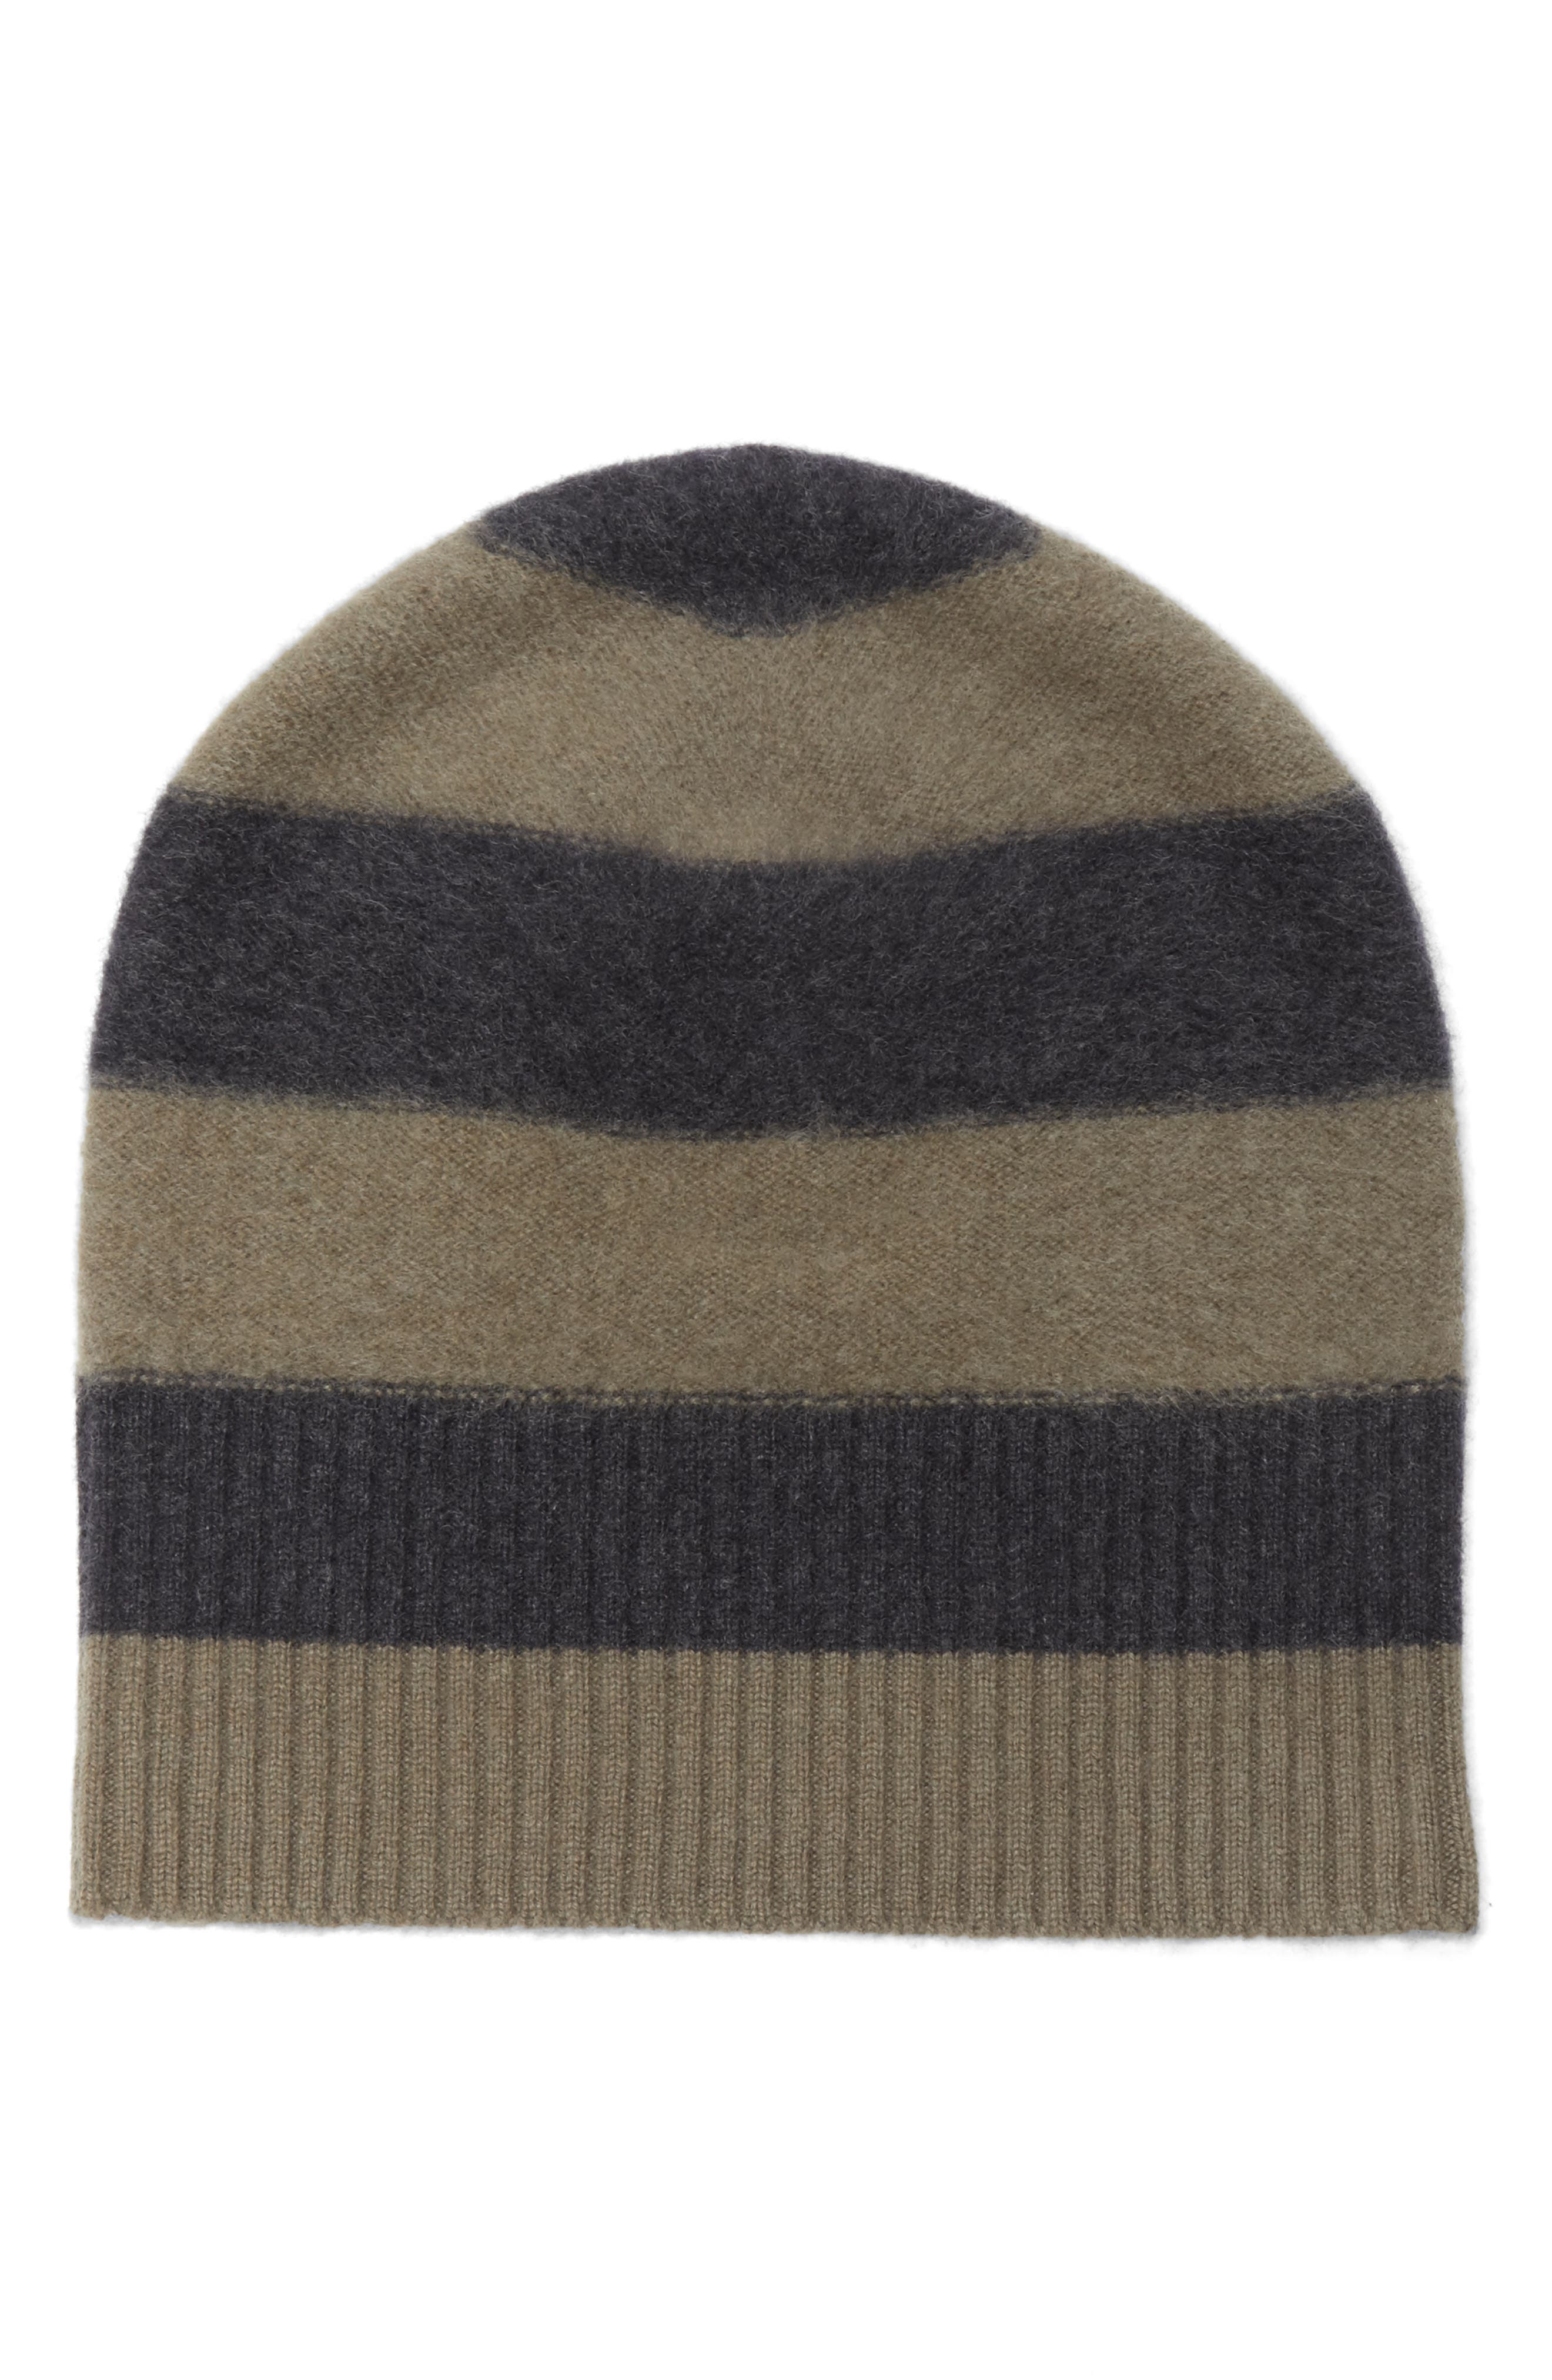 Stripe Cashmere Beanie,                             Main thumbnail 1, color,                             Olivewood/ Heather Carbon